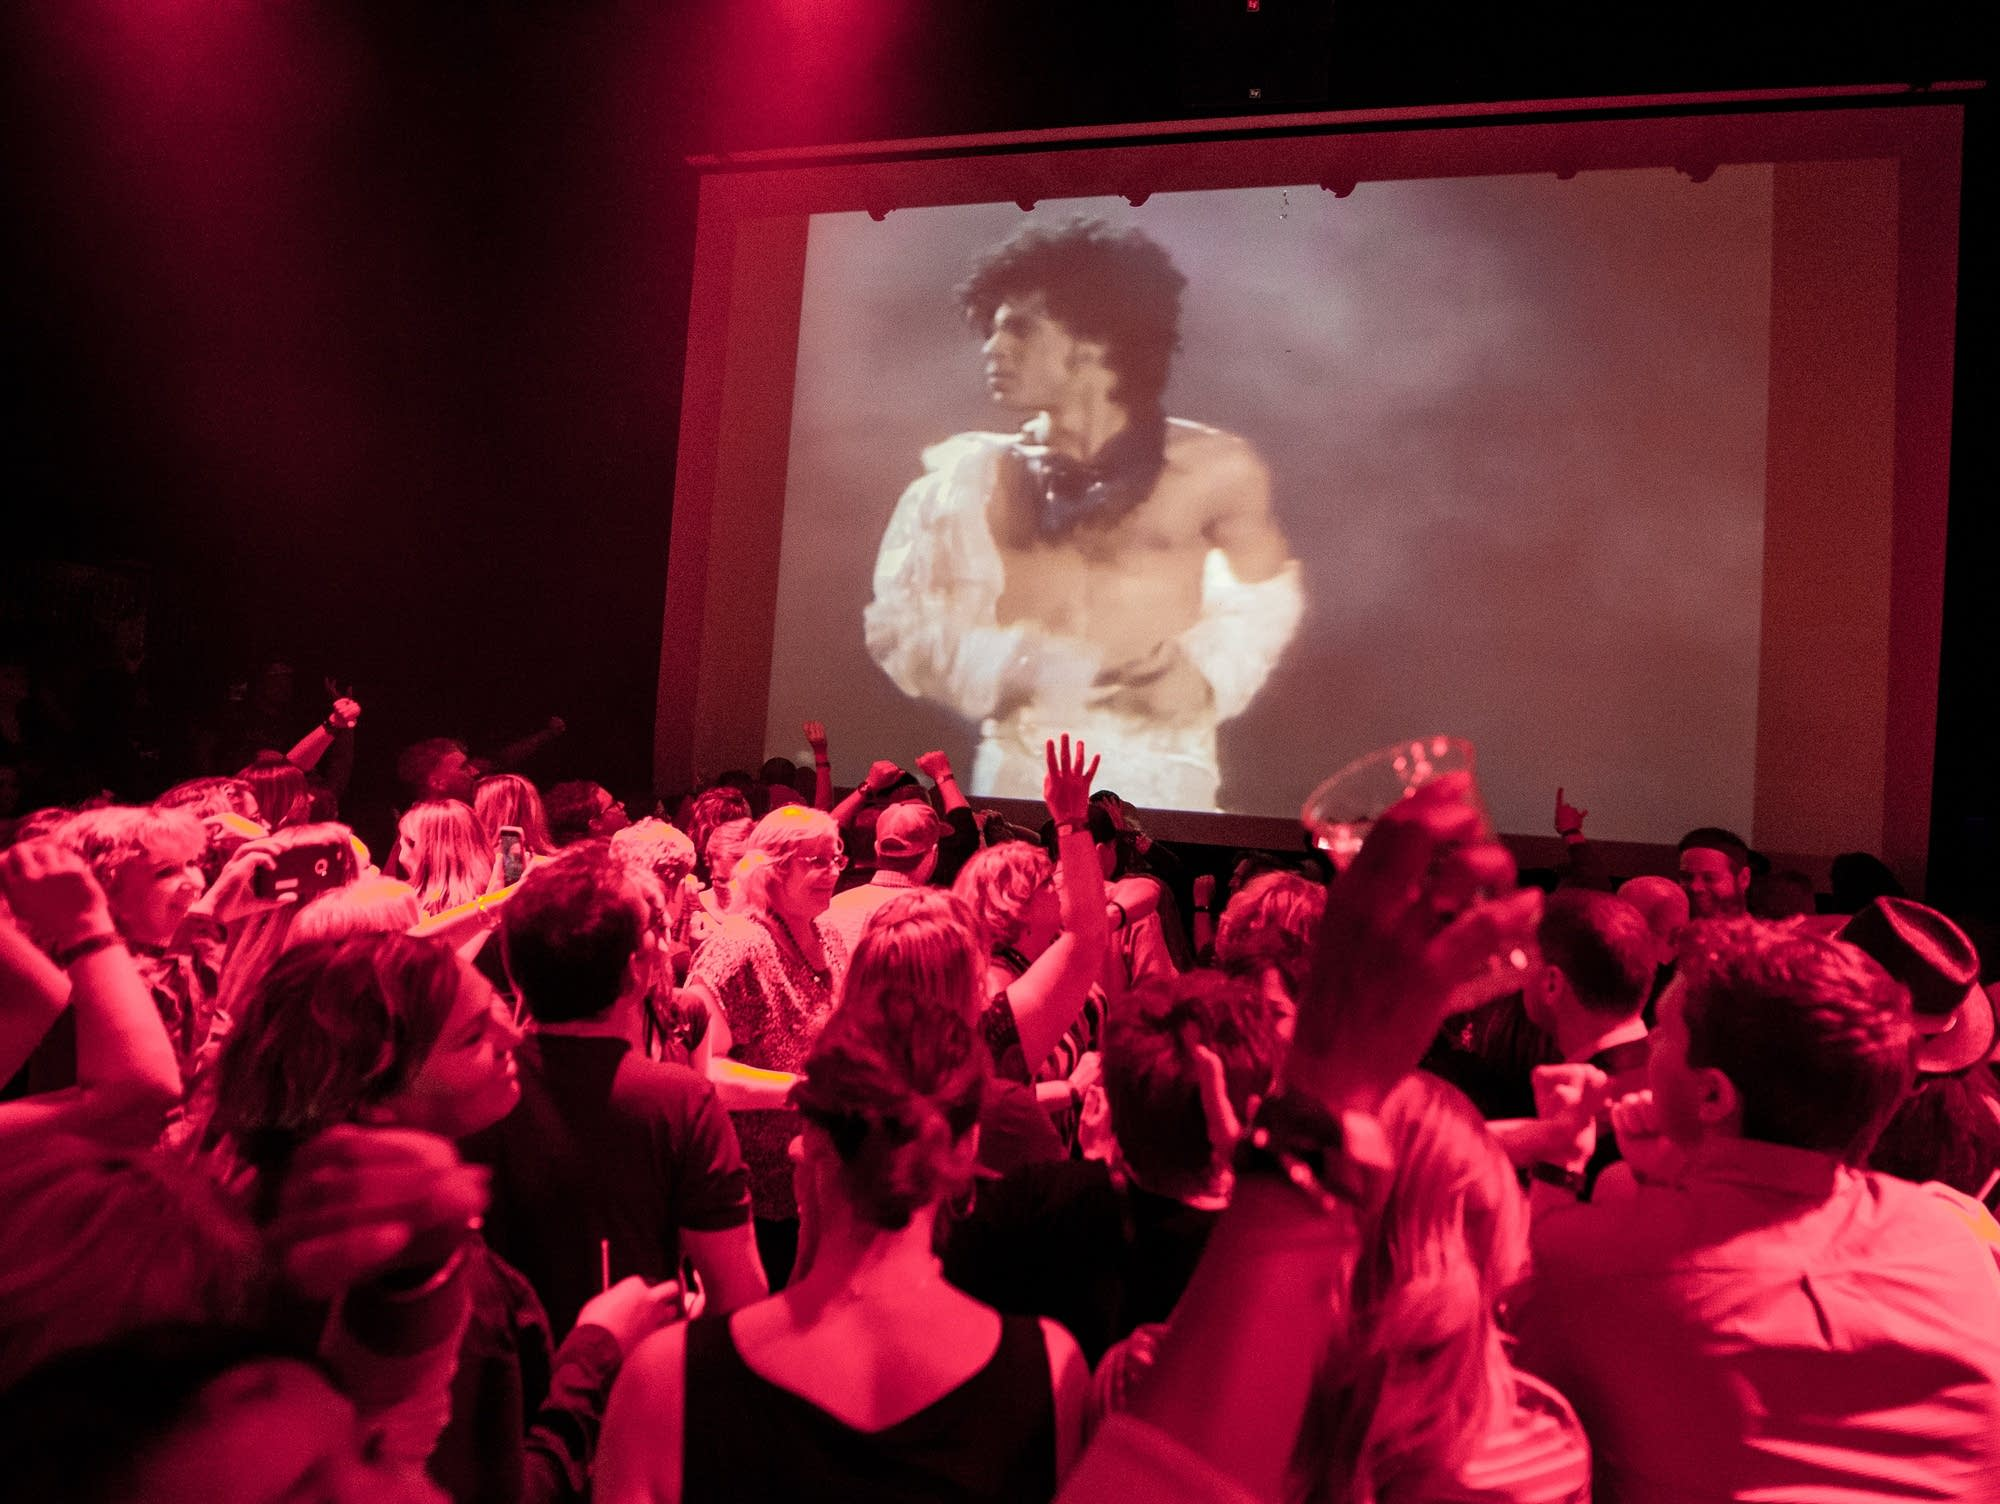 Prince fans dance while images of the musician appear on a screen.